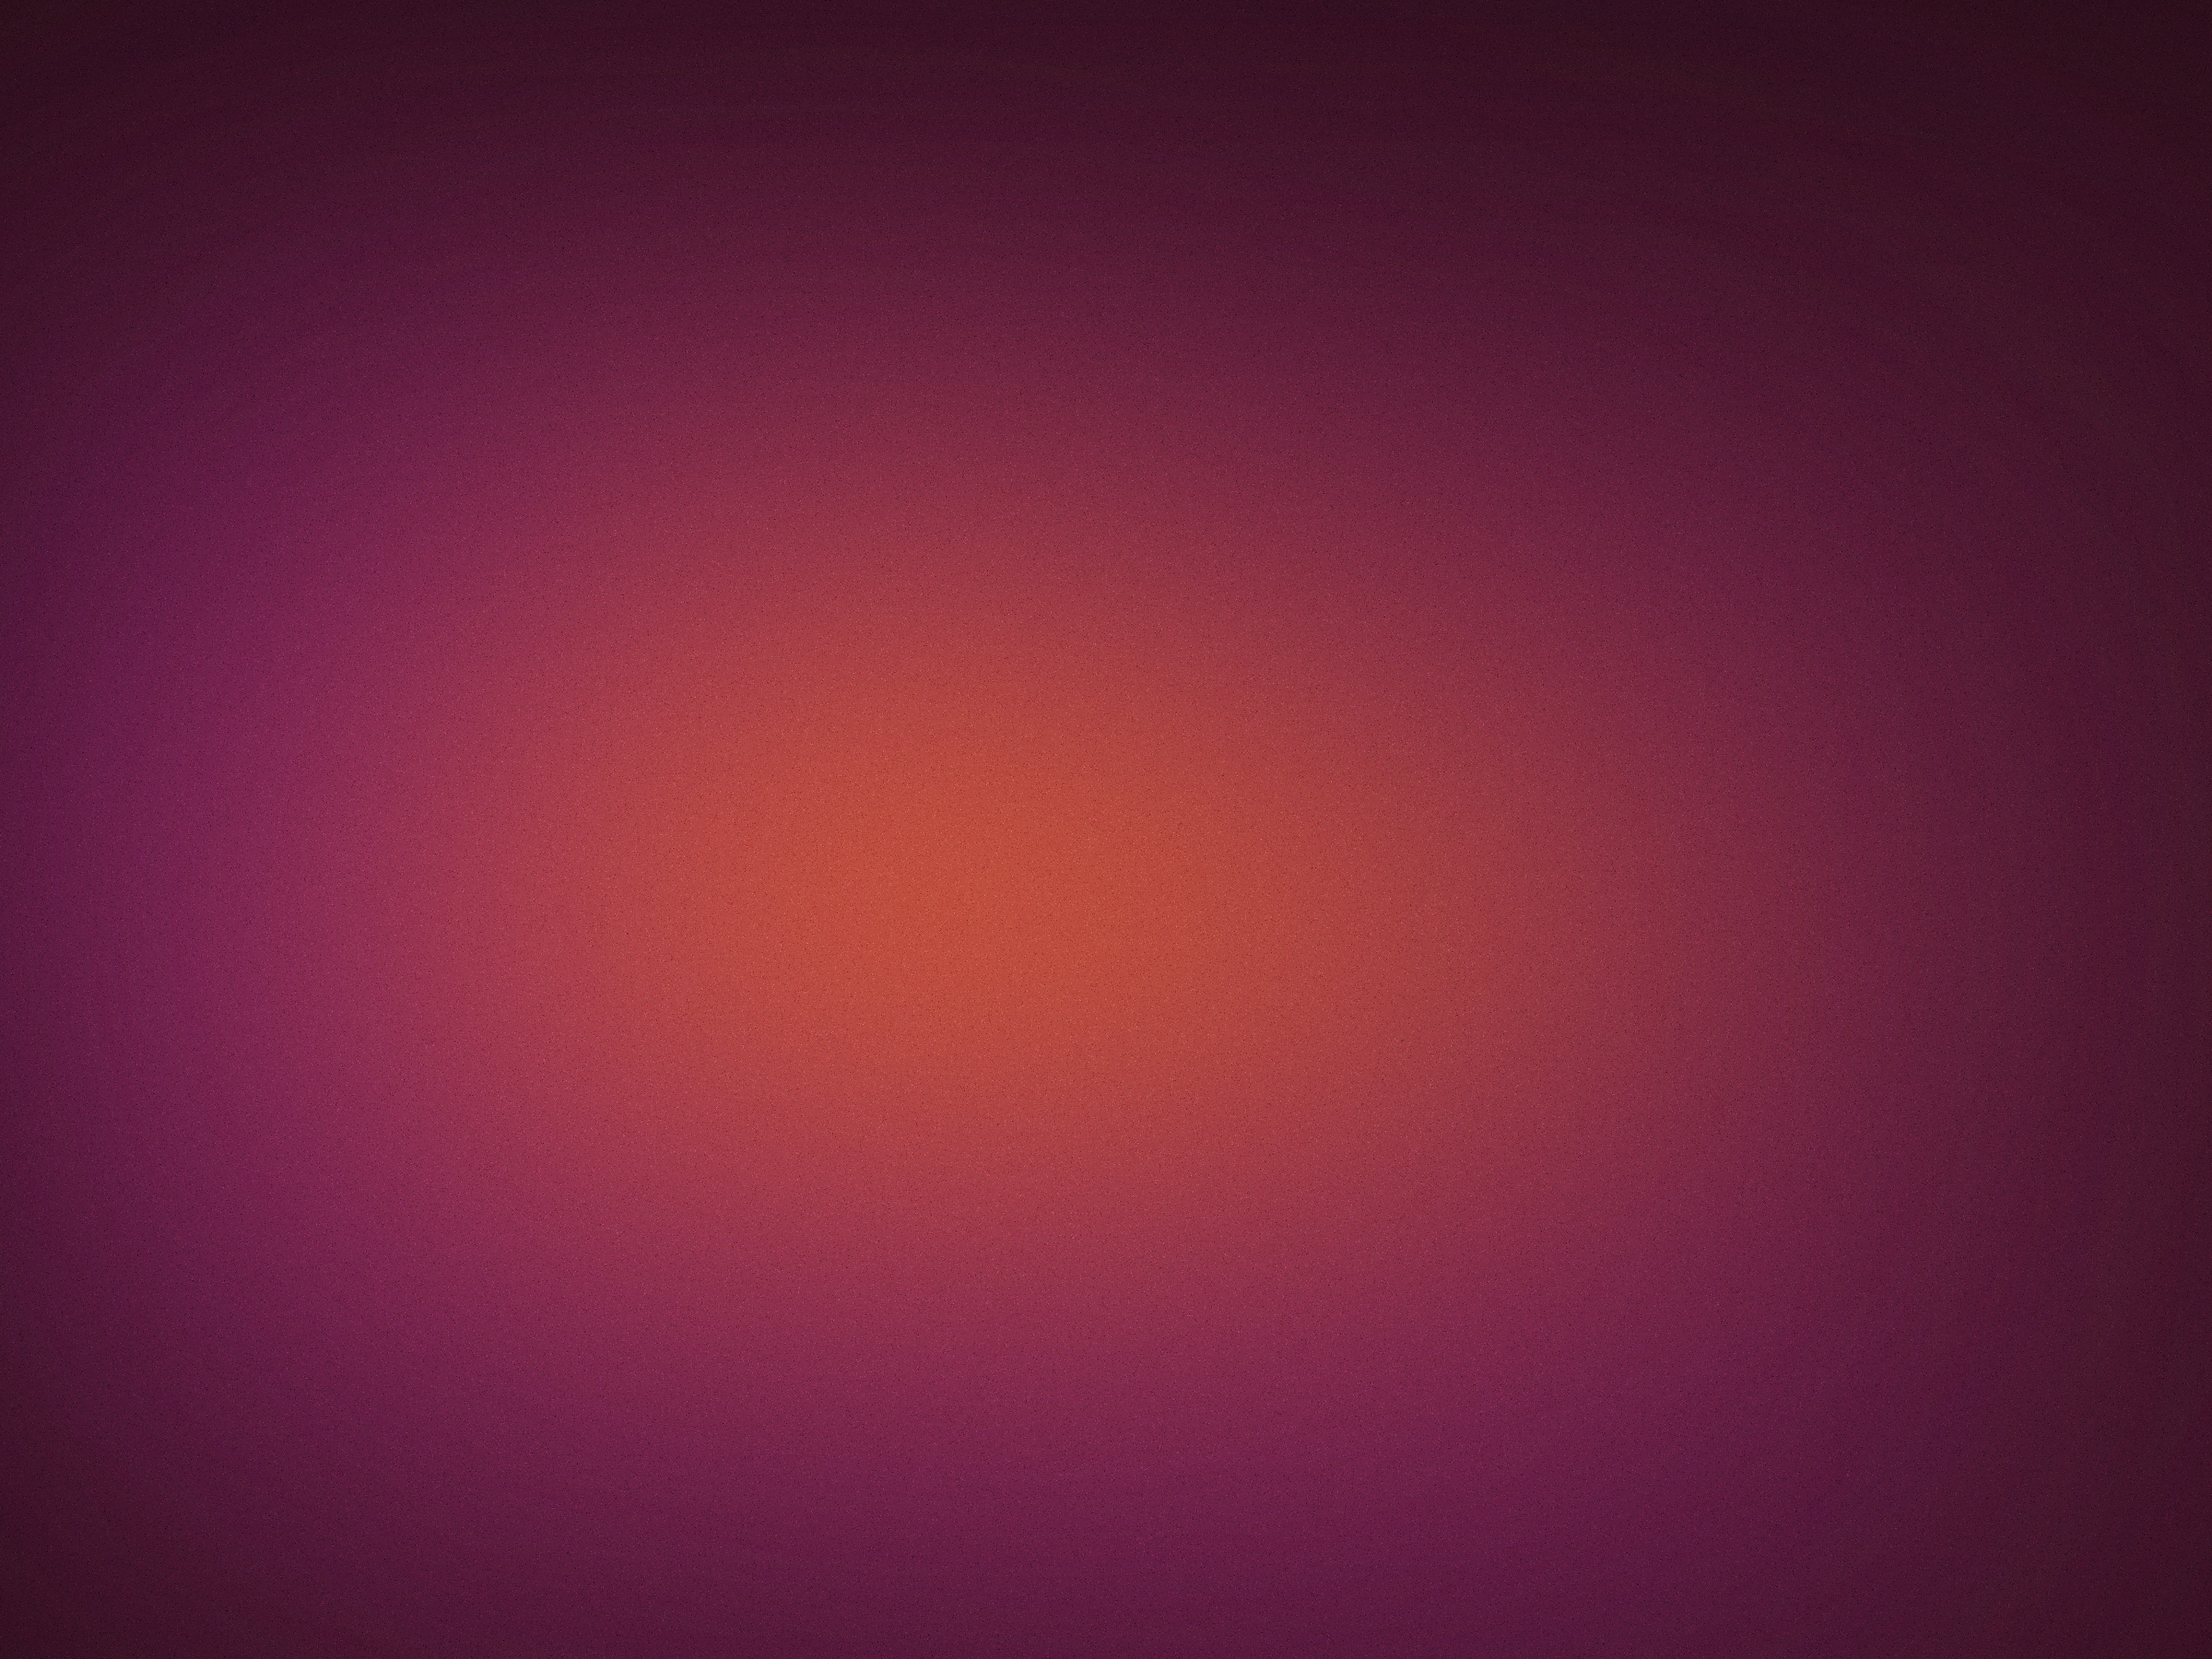 Ubuntu Concept Wallpaper